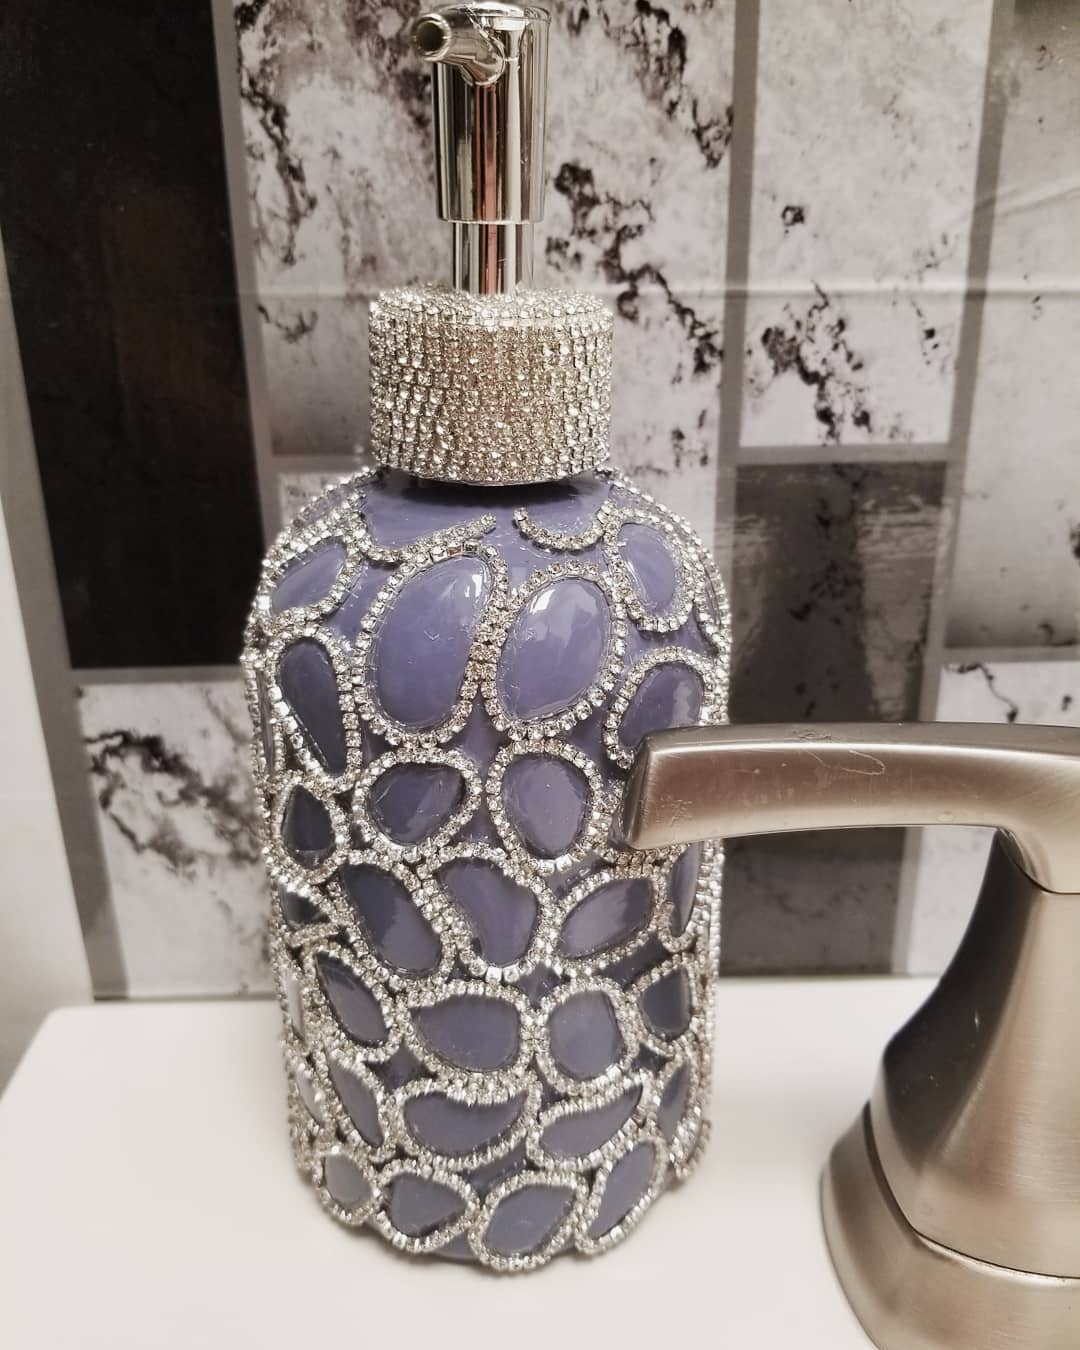 Bling for your bathroom Glam Decor Crystal Bling Soap Dispensers